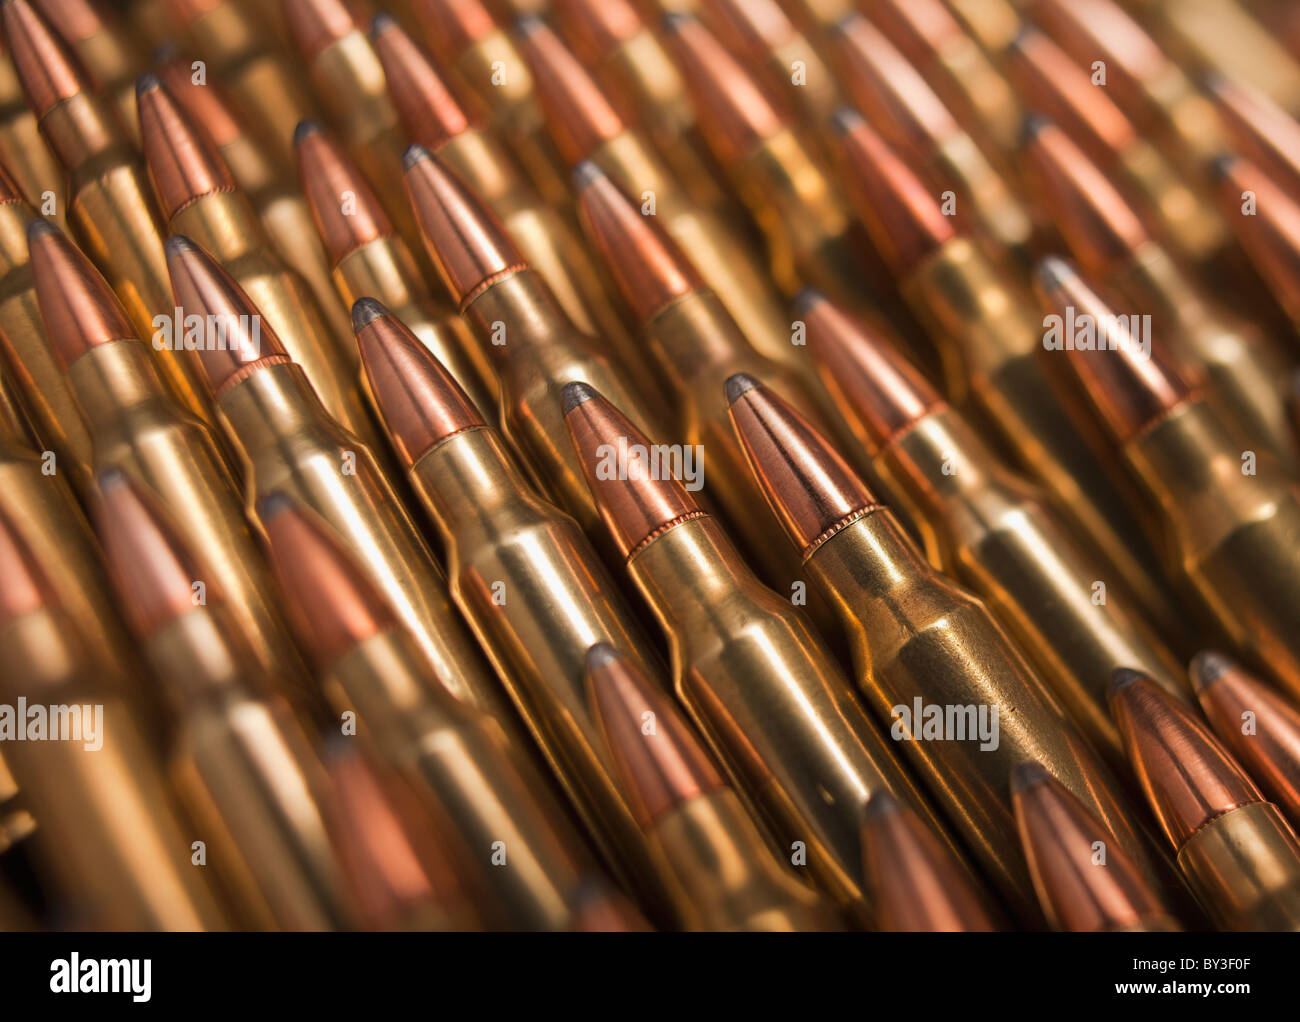 Pile of bullets - Stock Image